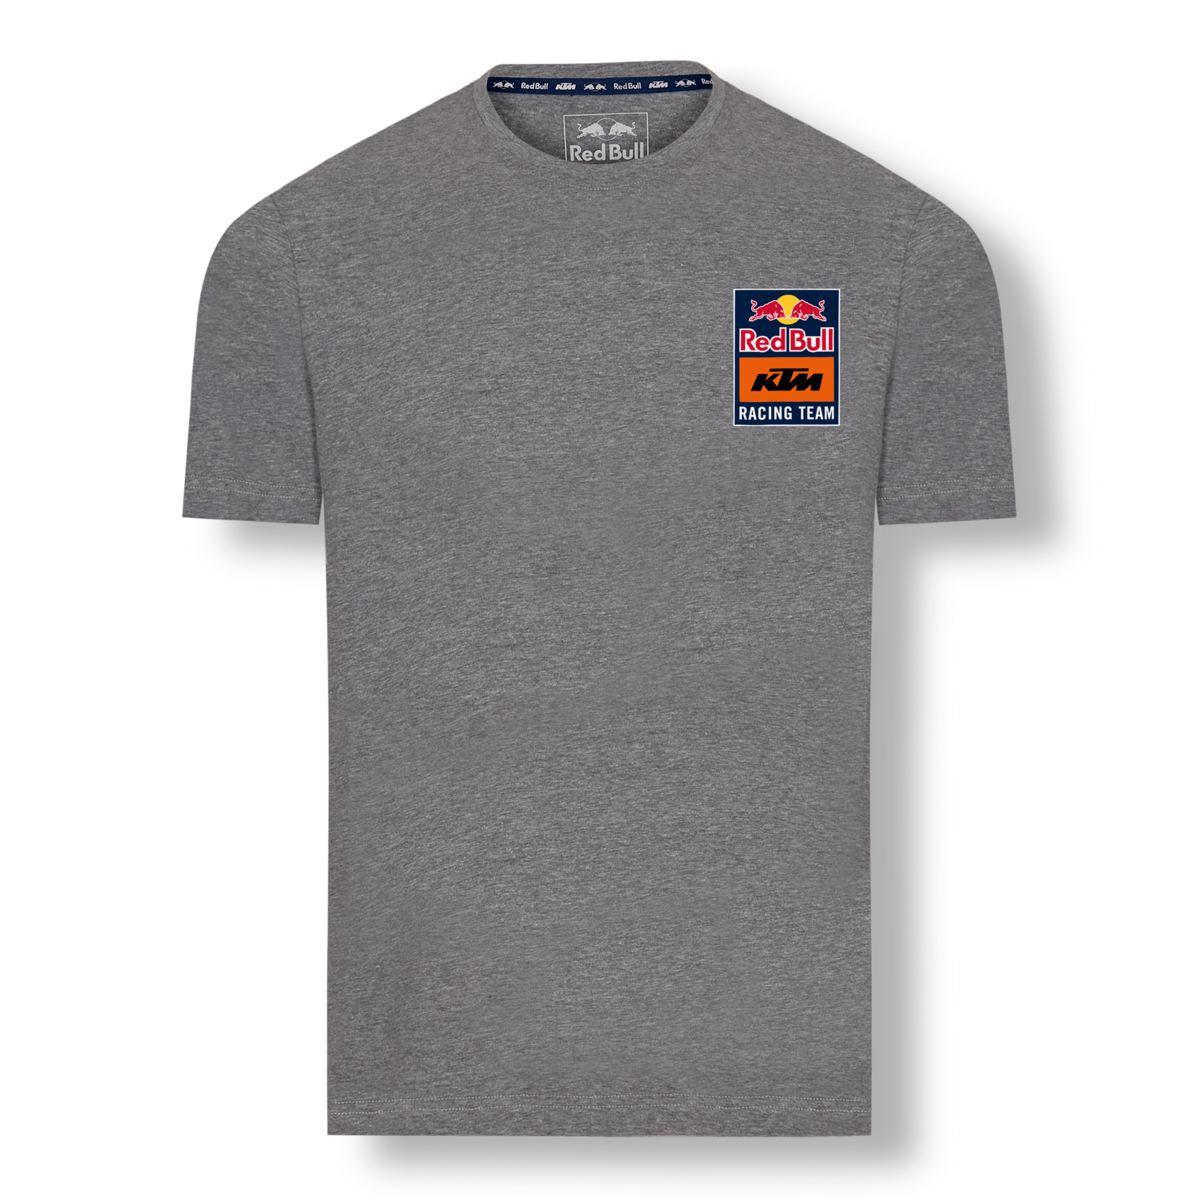 PHO-PW-PERS-VS-3RB21005720X-RB-KTM-BACKPRINT-TEE-GREY-FRONT-SALL-AWSG-V1